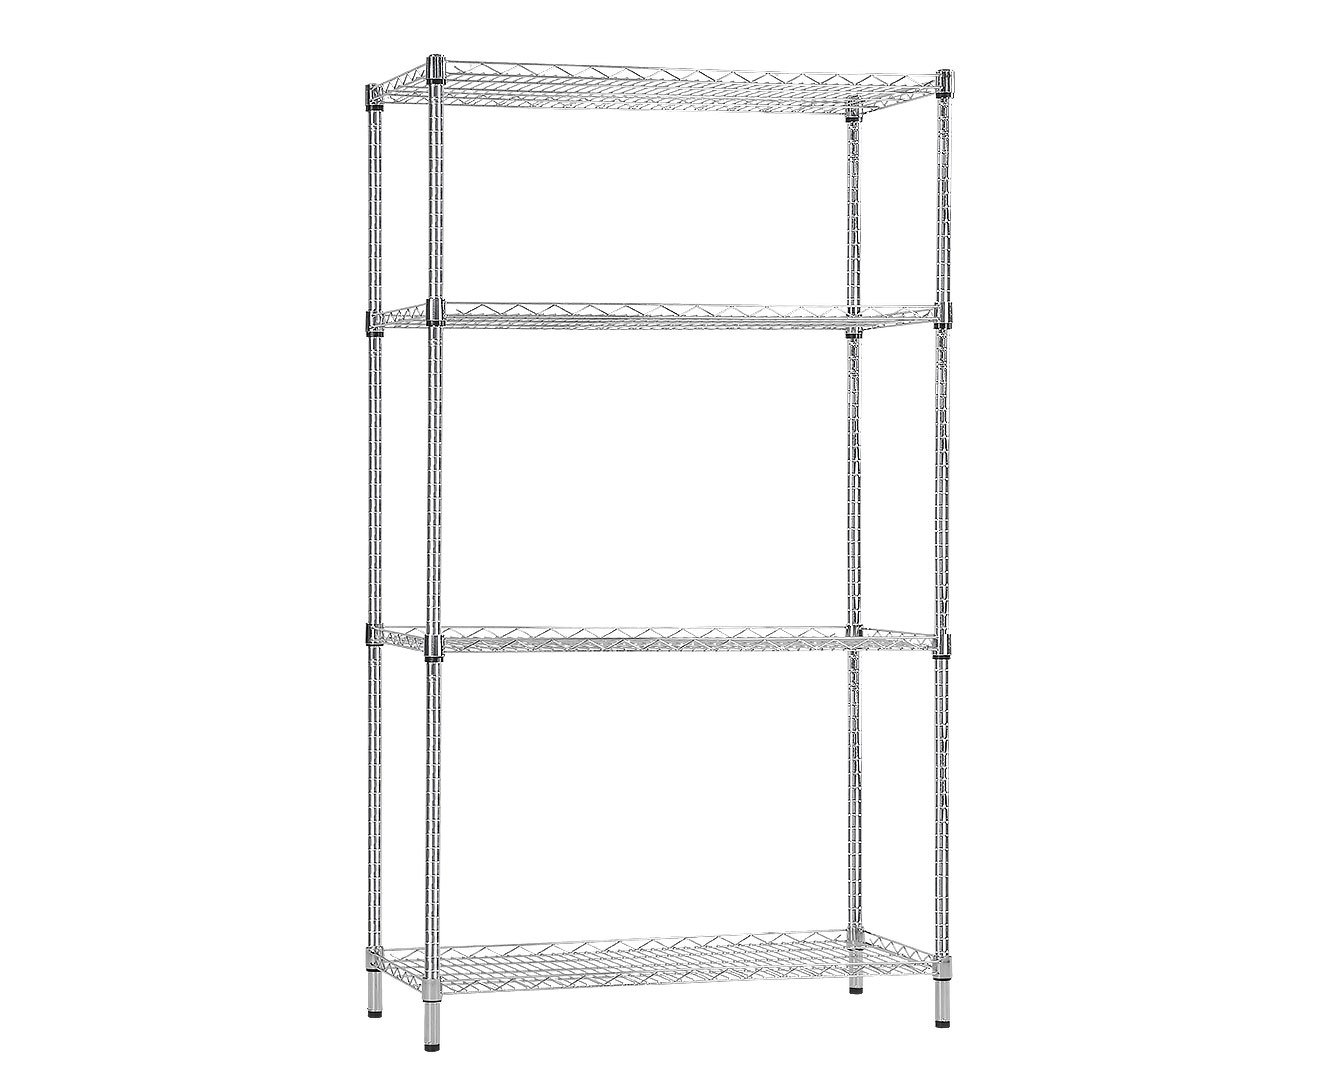 Syncrosteel Chrome Wire Shelving Storage Unit 1200 x 450mm - 1.8m High - $327.9